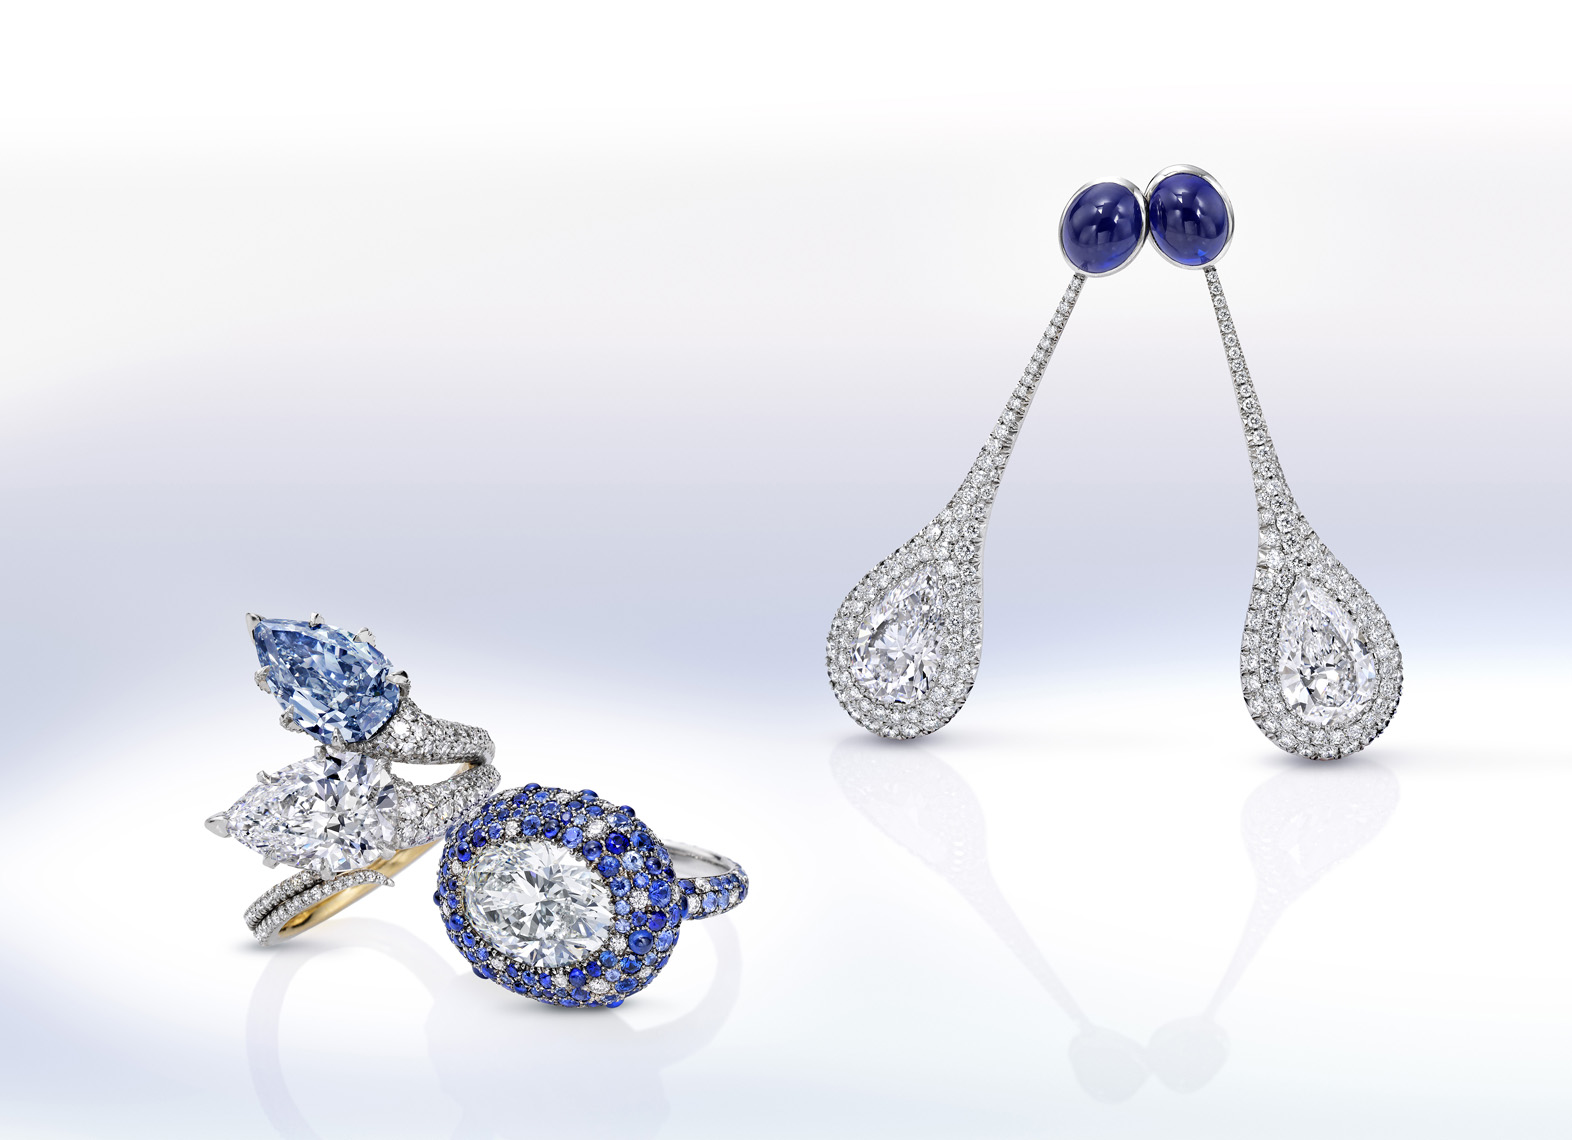 Saphire and diamond jewelry